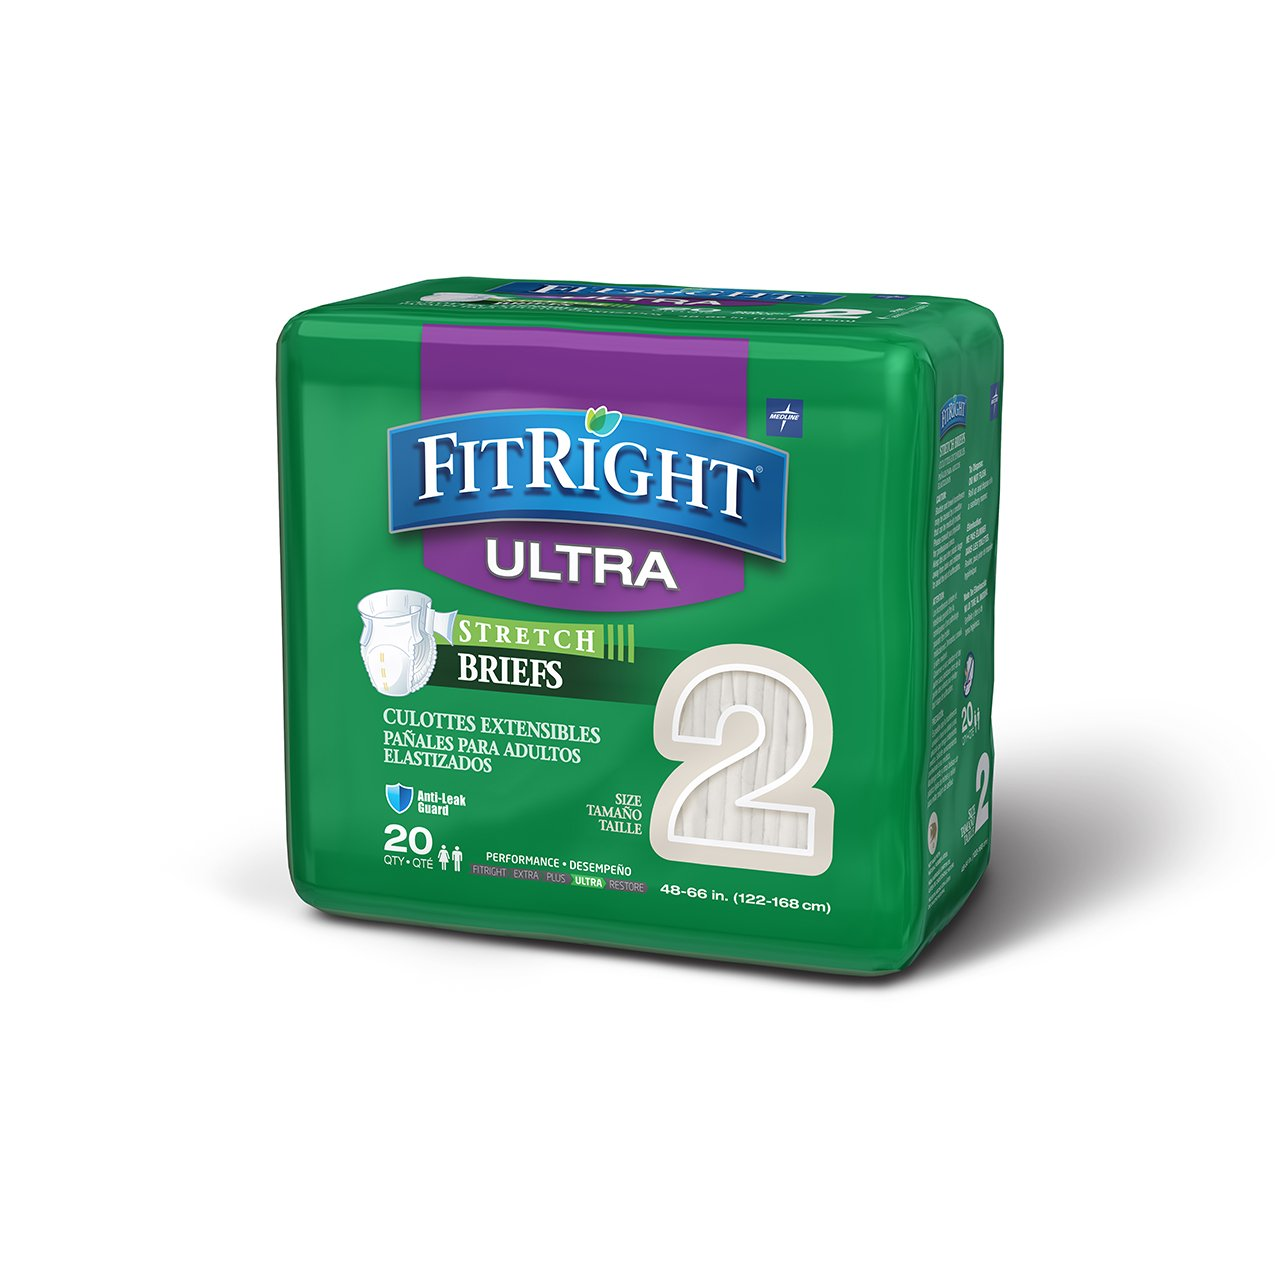 FitRight Stretch Adult Briefs with Tabs, Heavy Absorbency, Large, 48